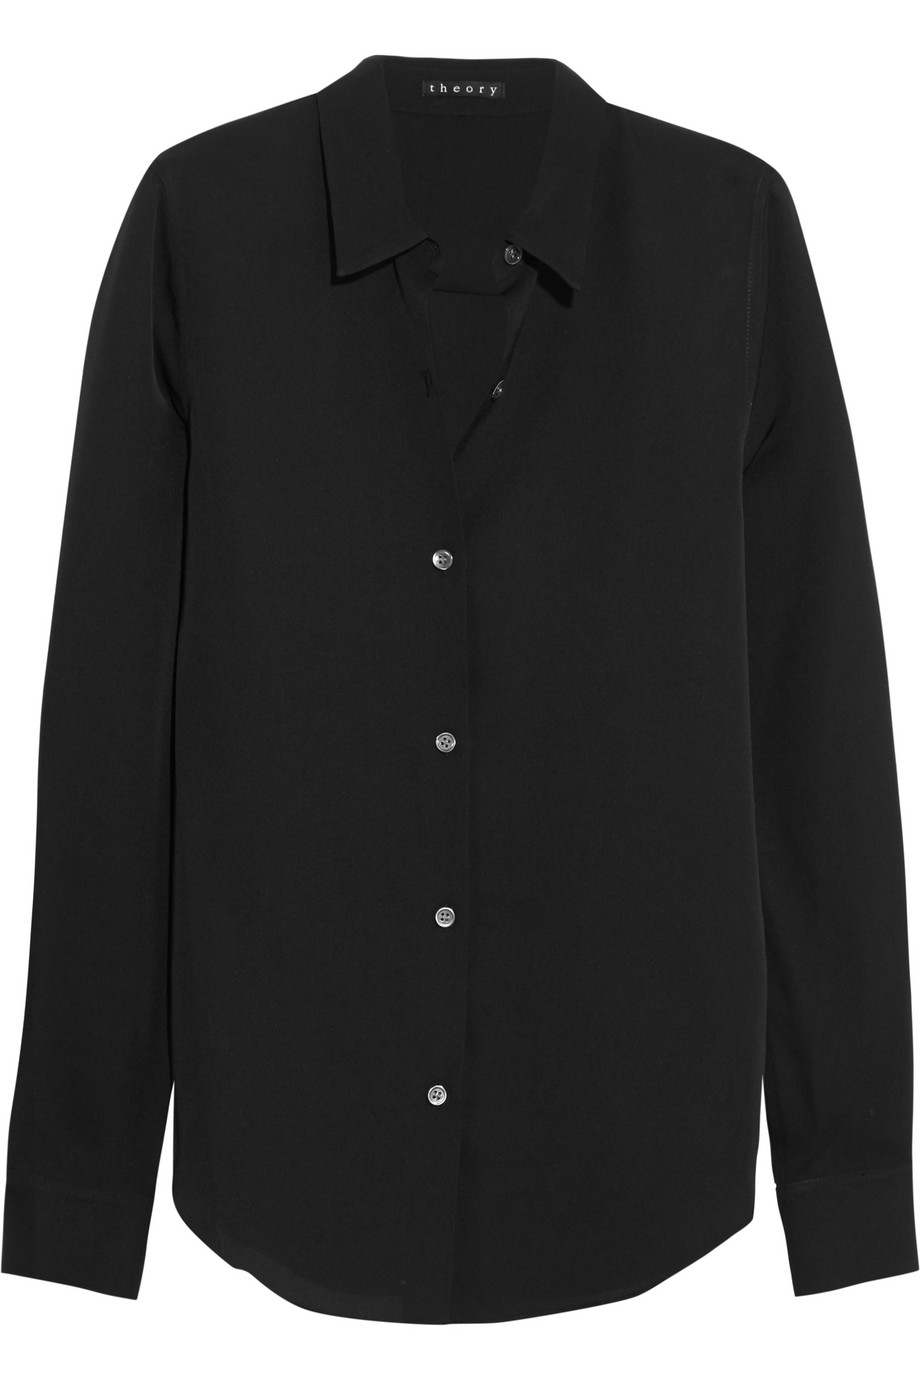 Theory Tenia Silk-Crepe Shirt, Black, Women's